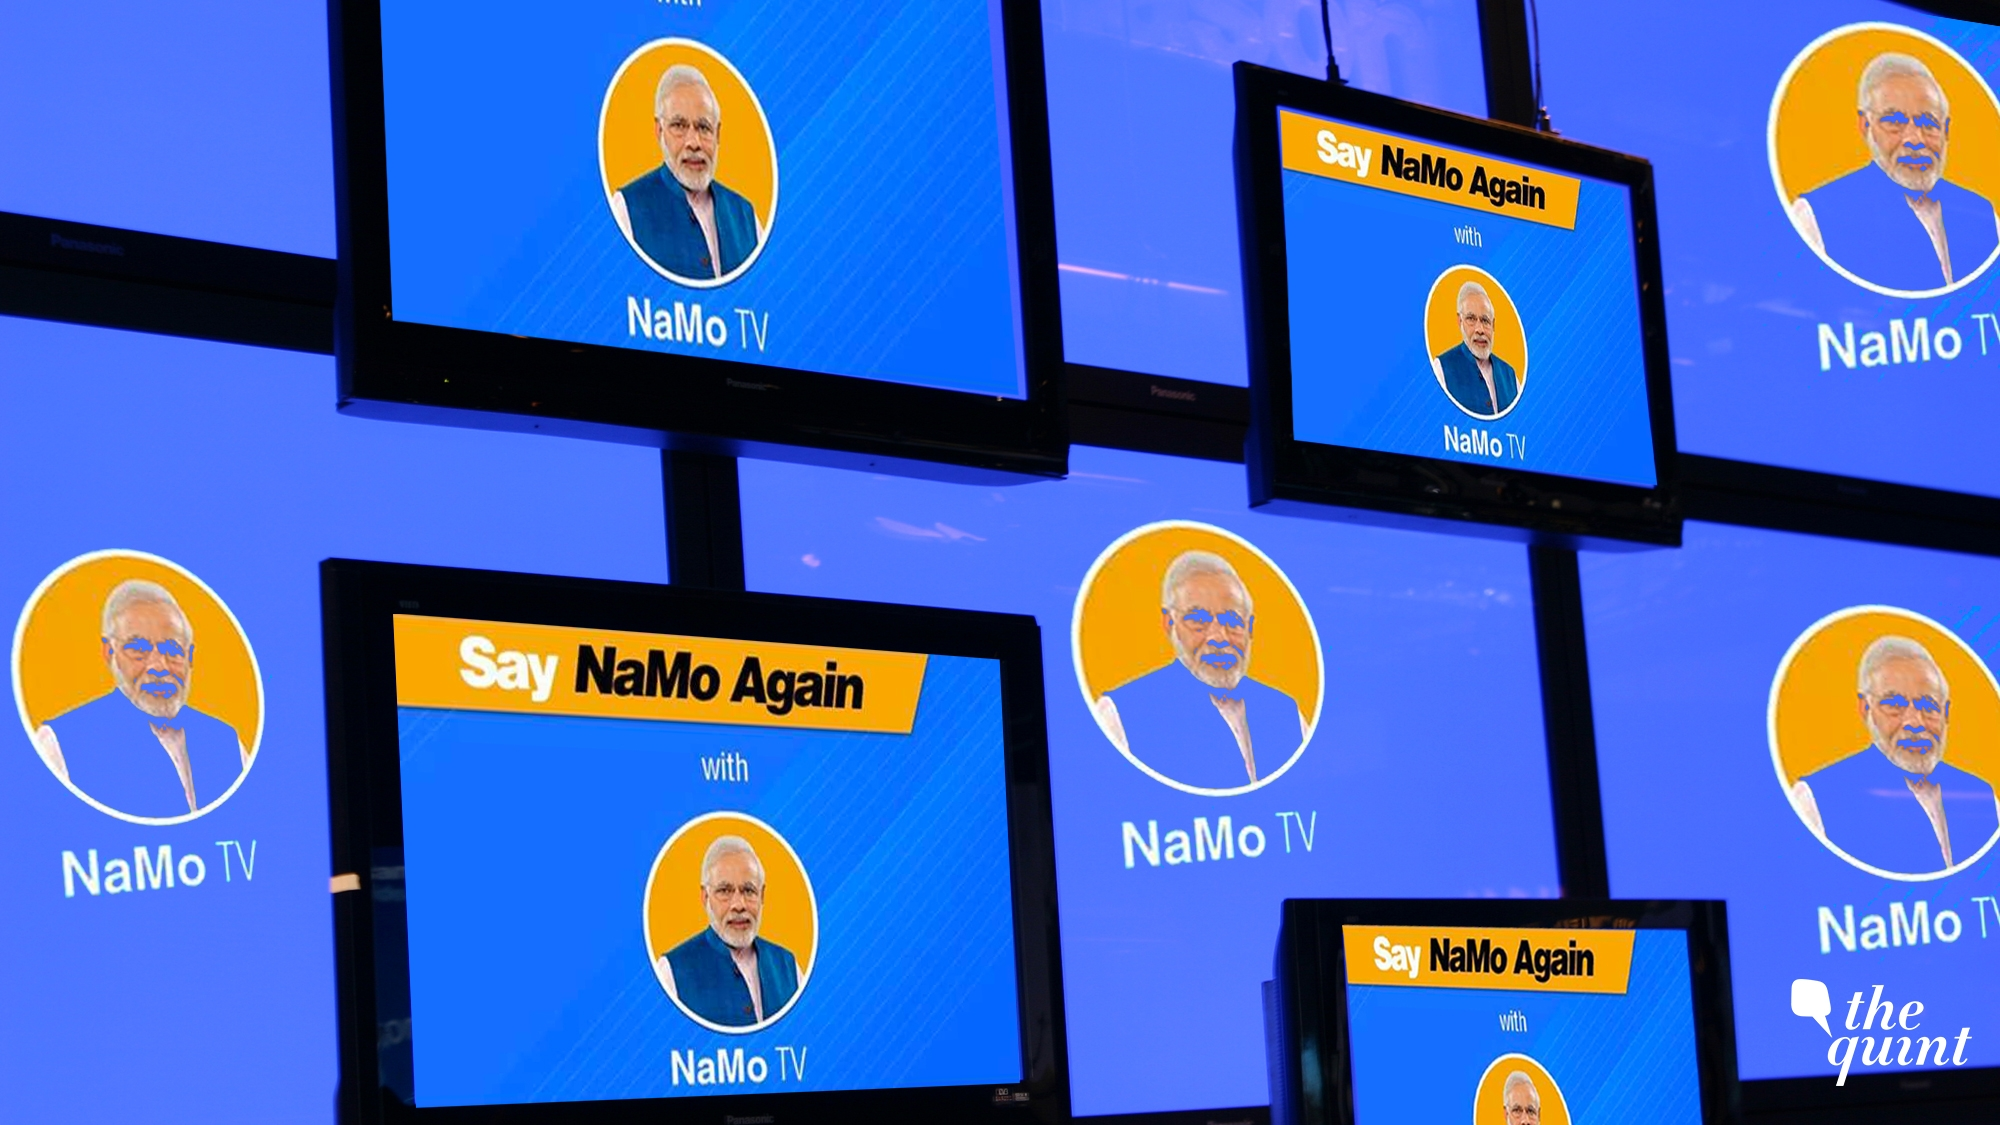 BJP Seeks Permission to Air 'Padman' And 'Toilet' on NaMo TV